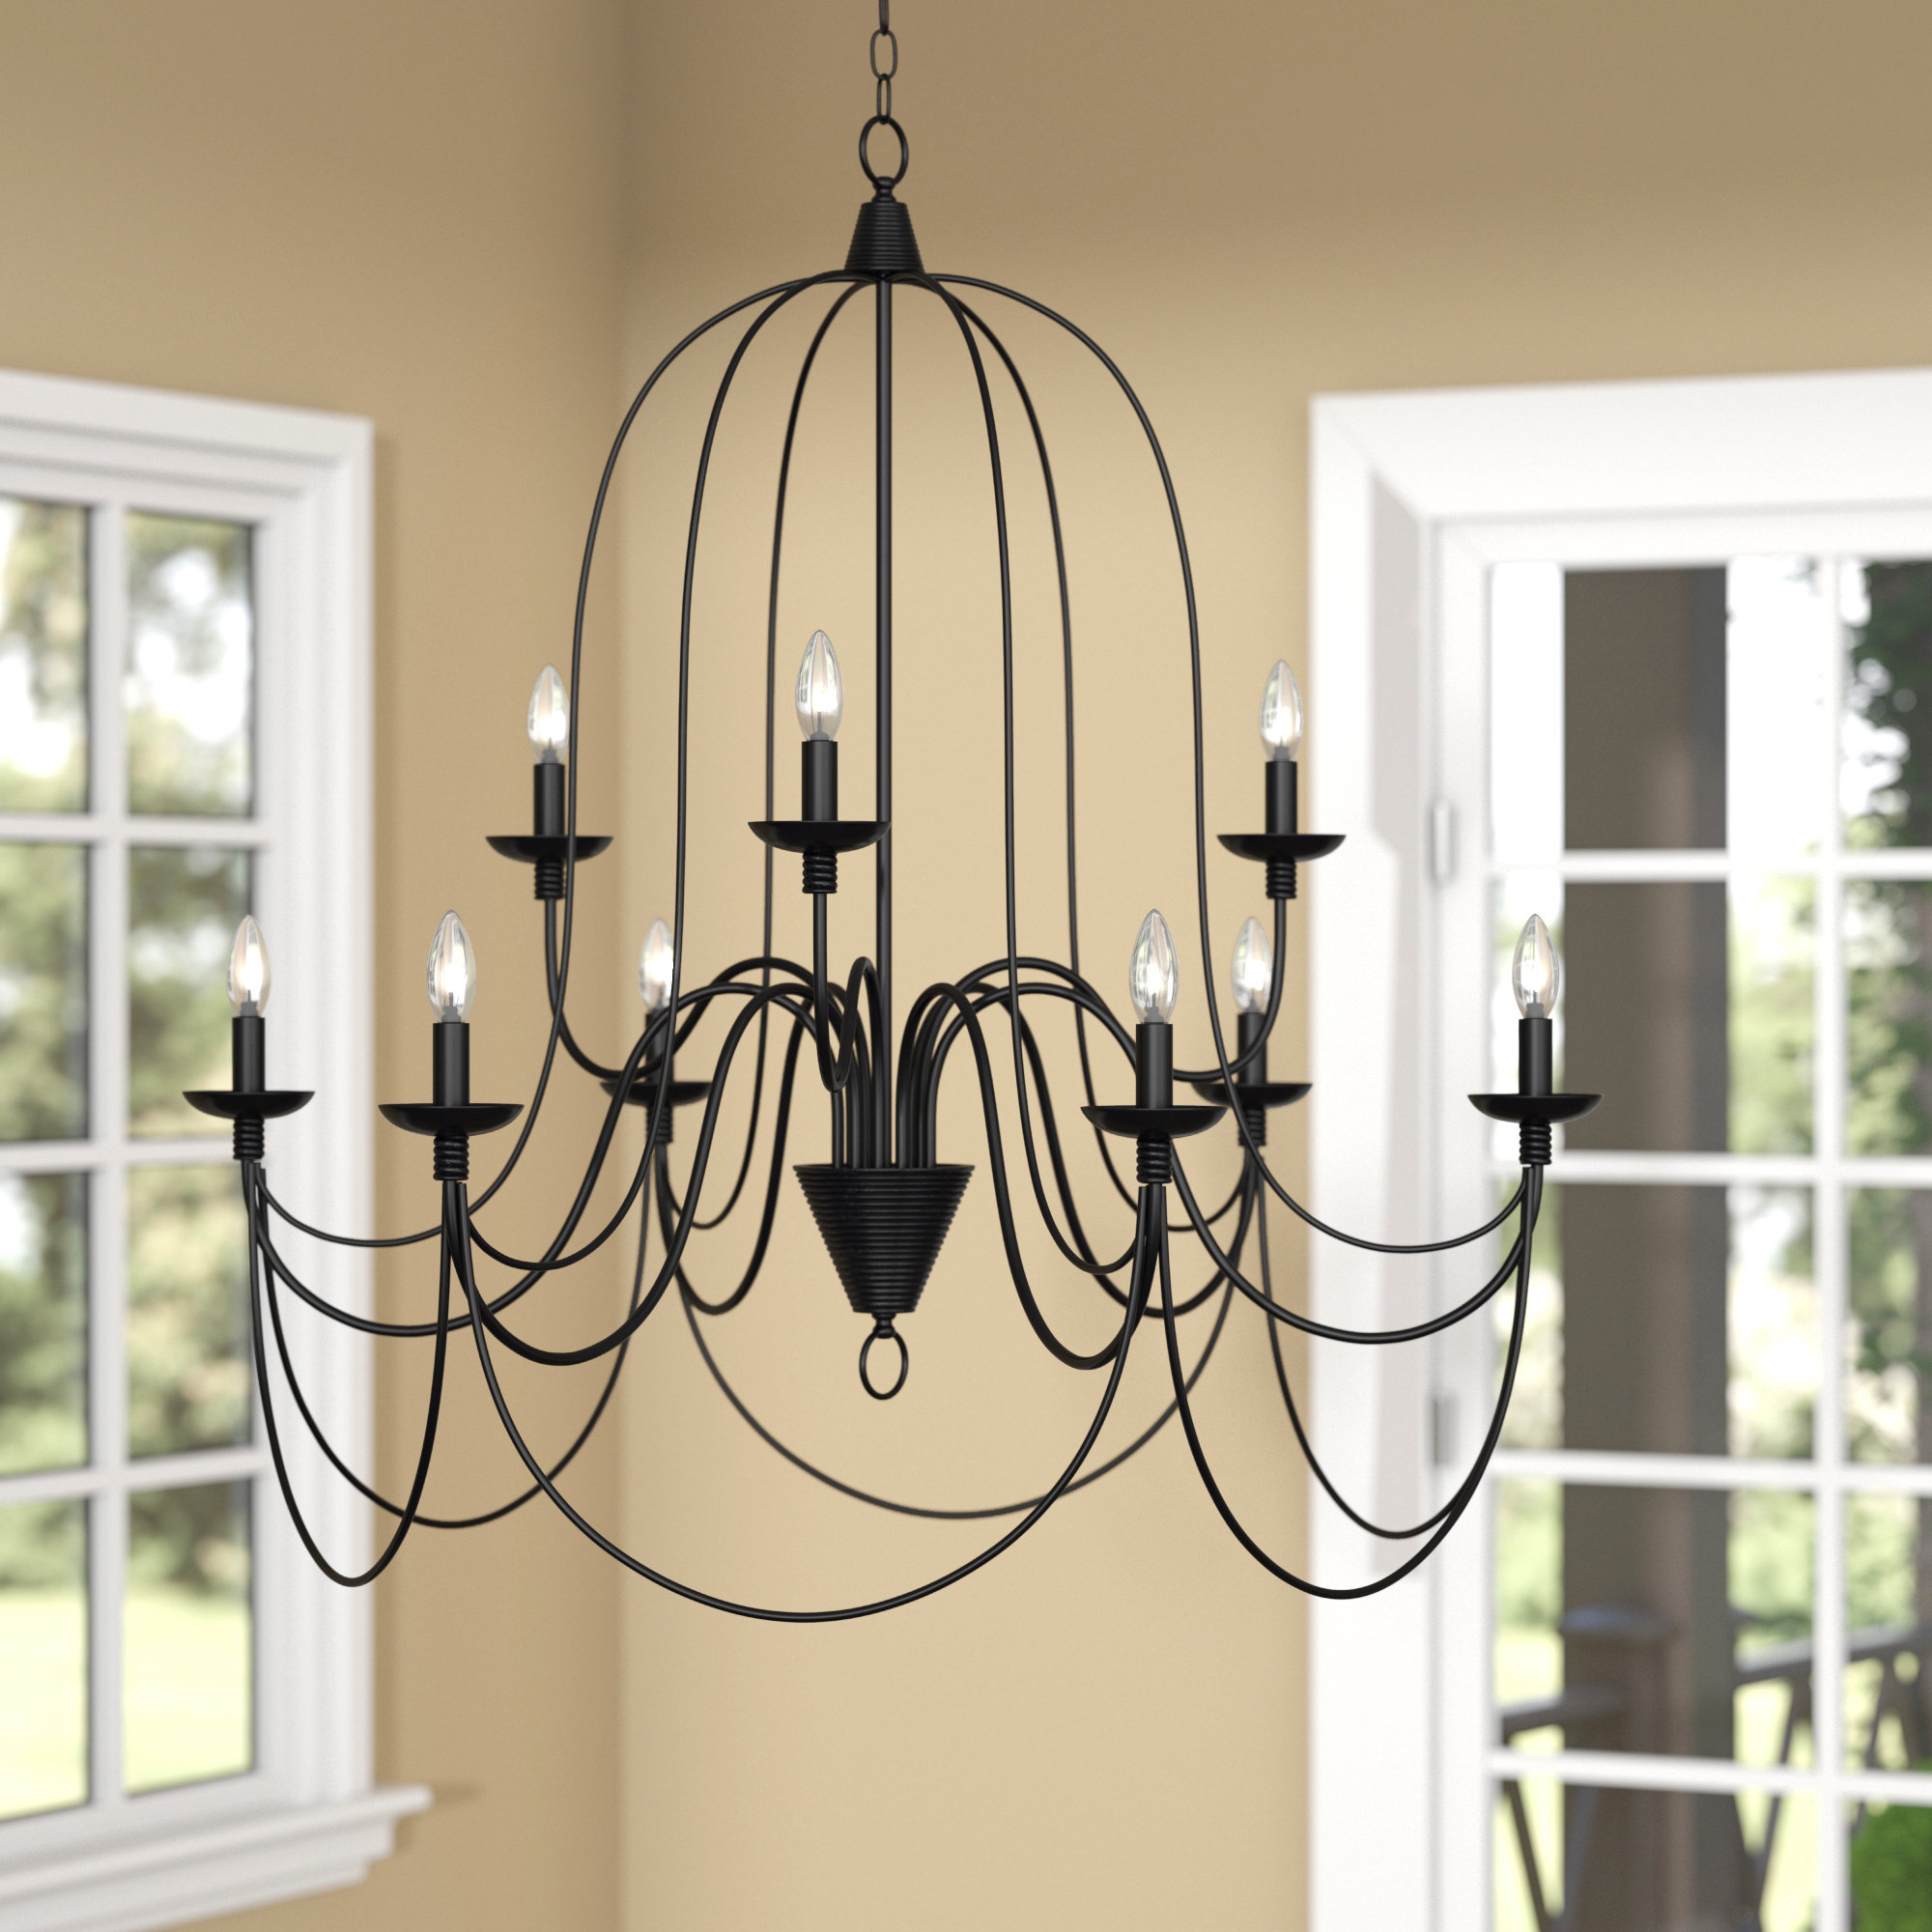 Widely Used Watford 6 Light Candle Style Chandeliers Pertaining To Watford 9 Light Candle Style Chandelier (Gallery 5 of 20)